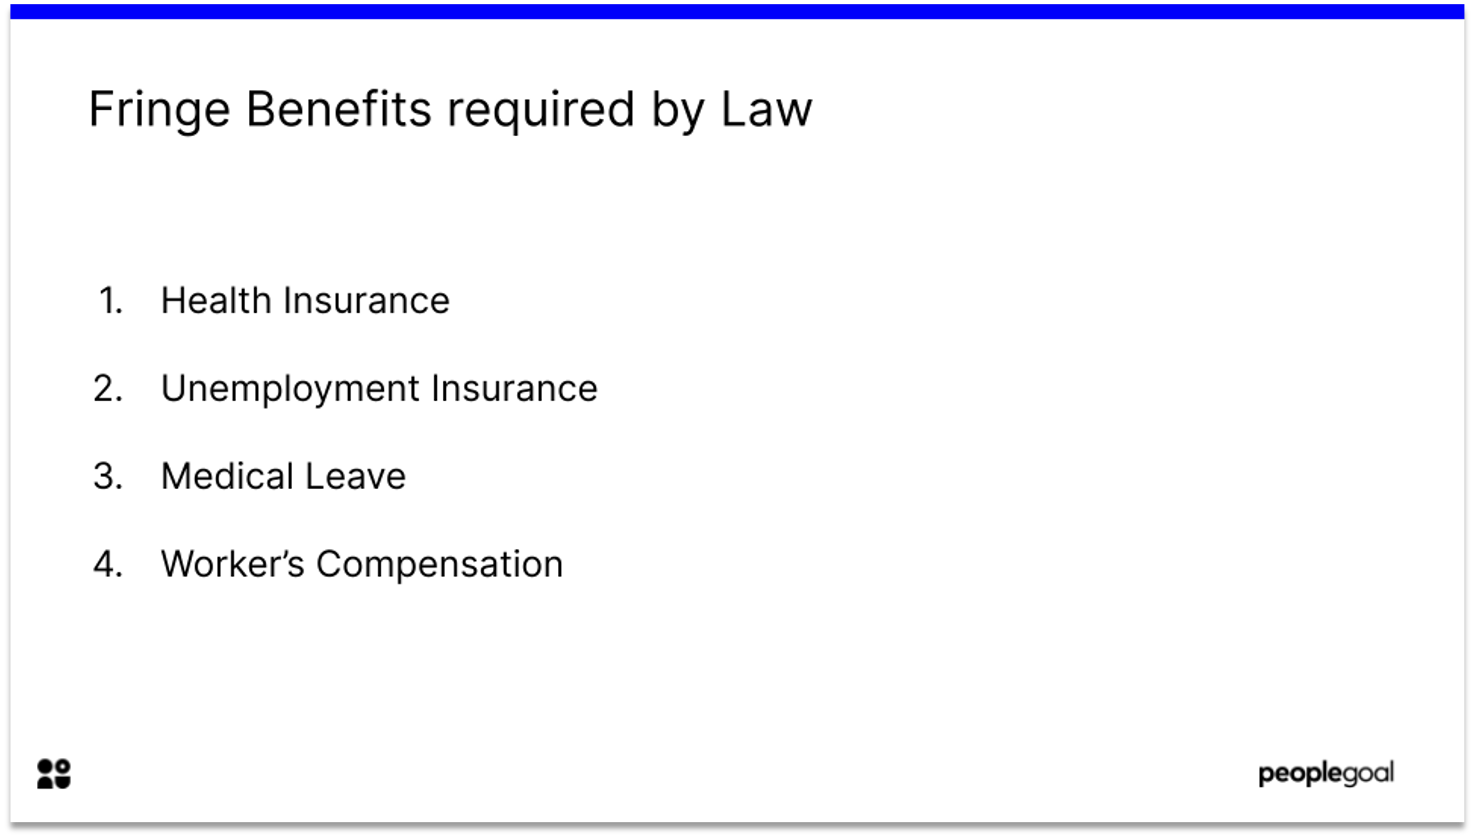 Fringe Benefits required by law